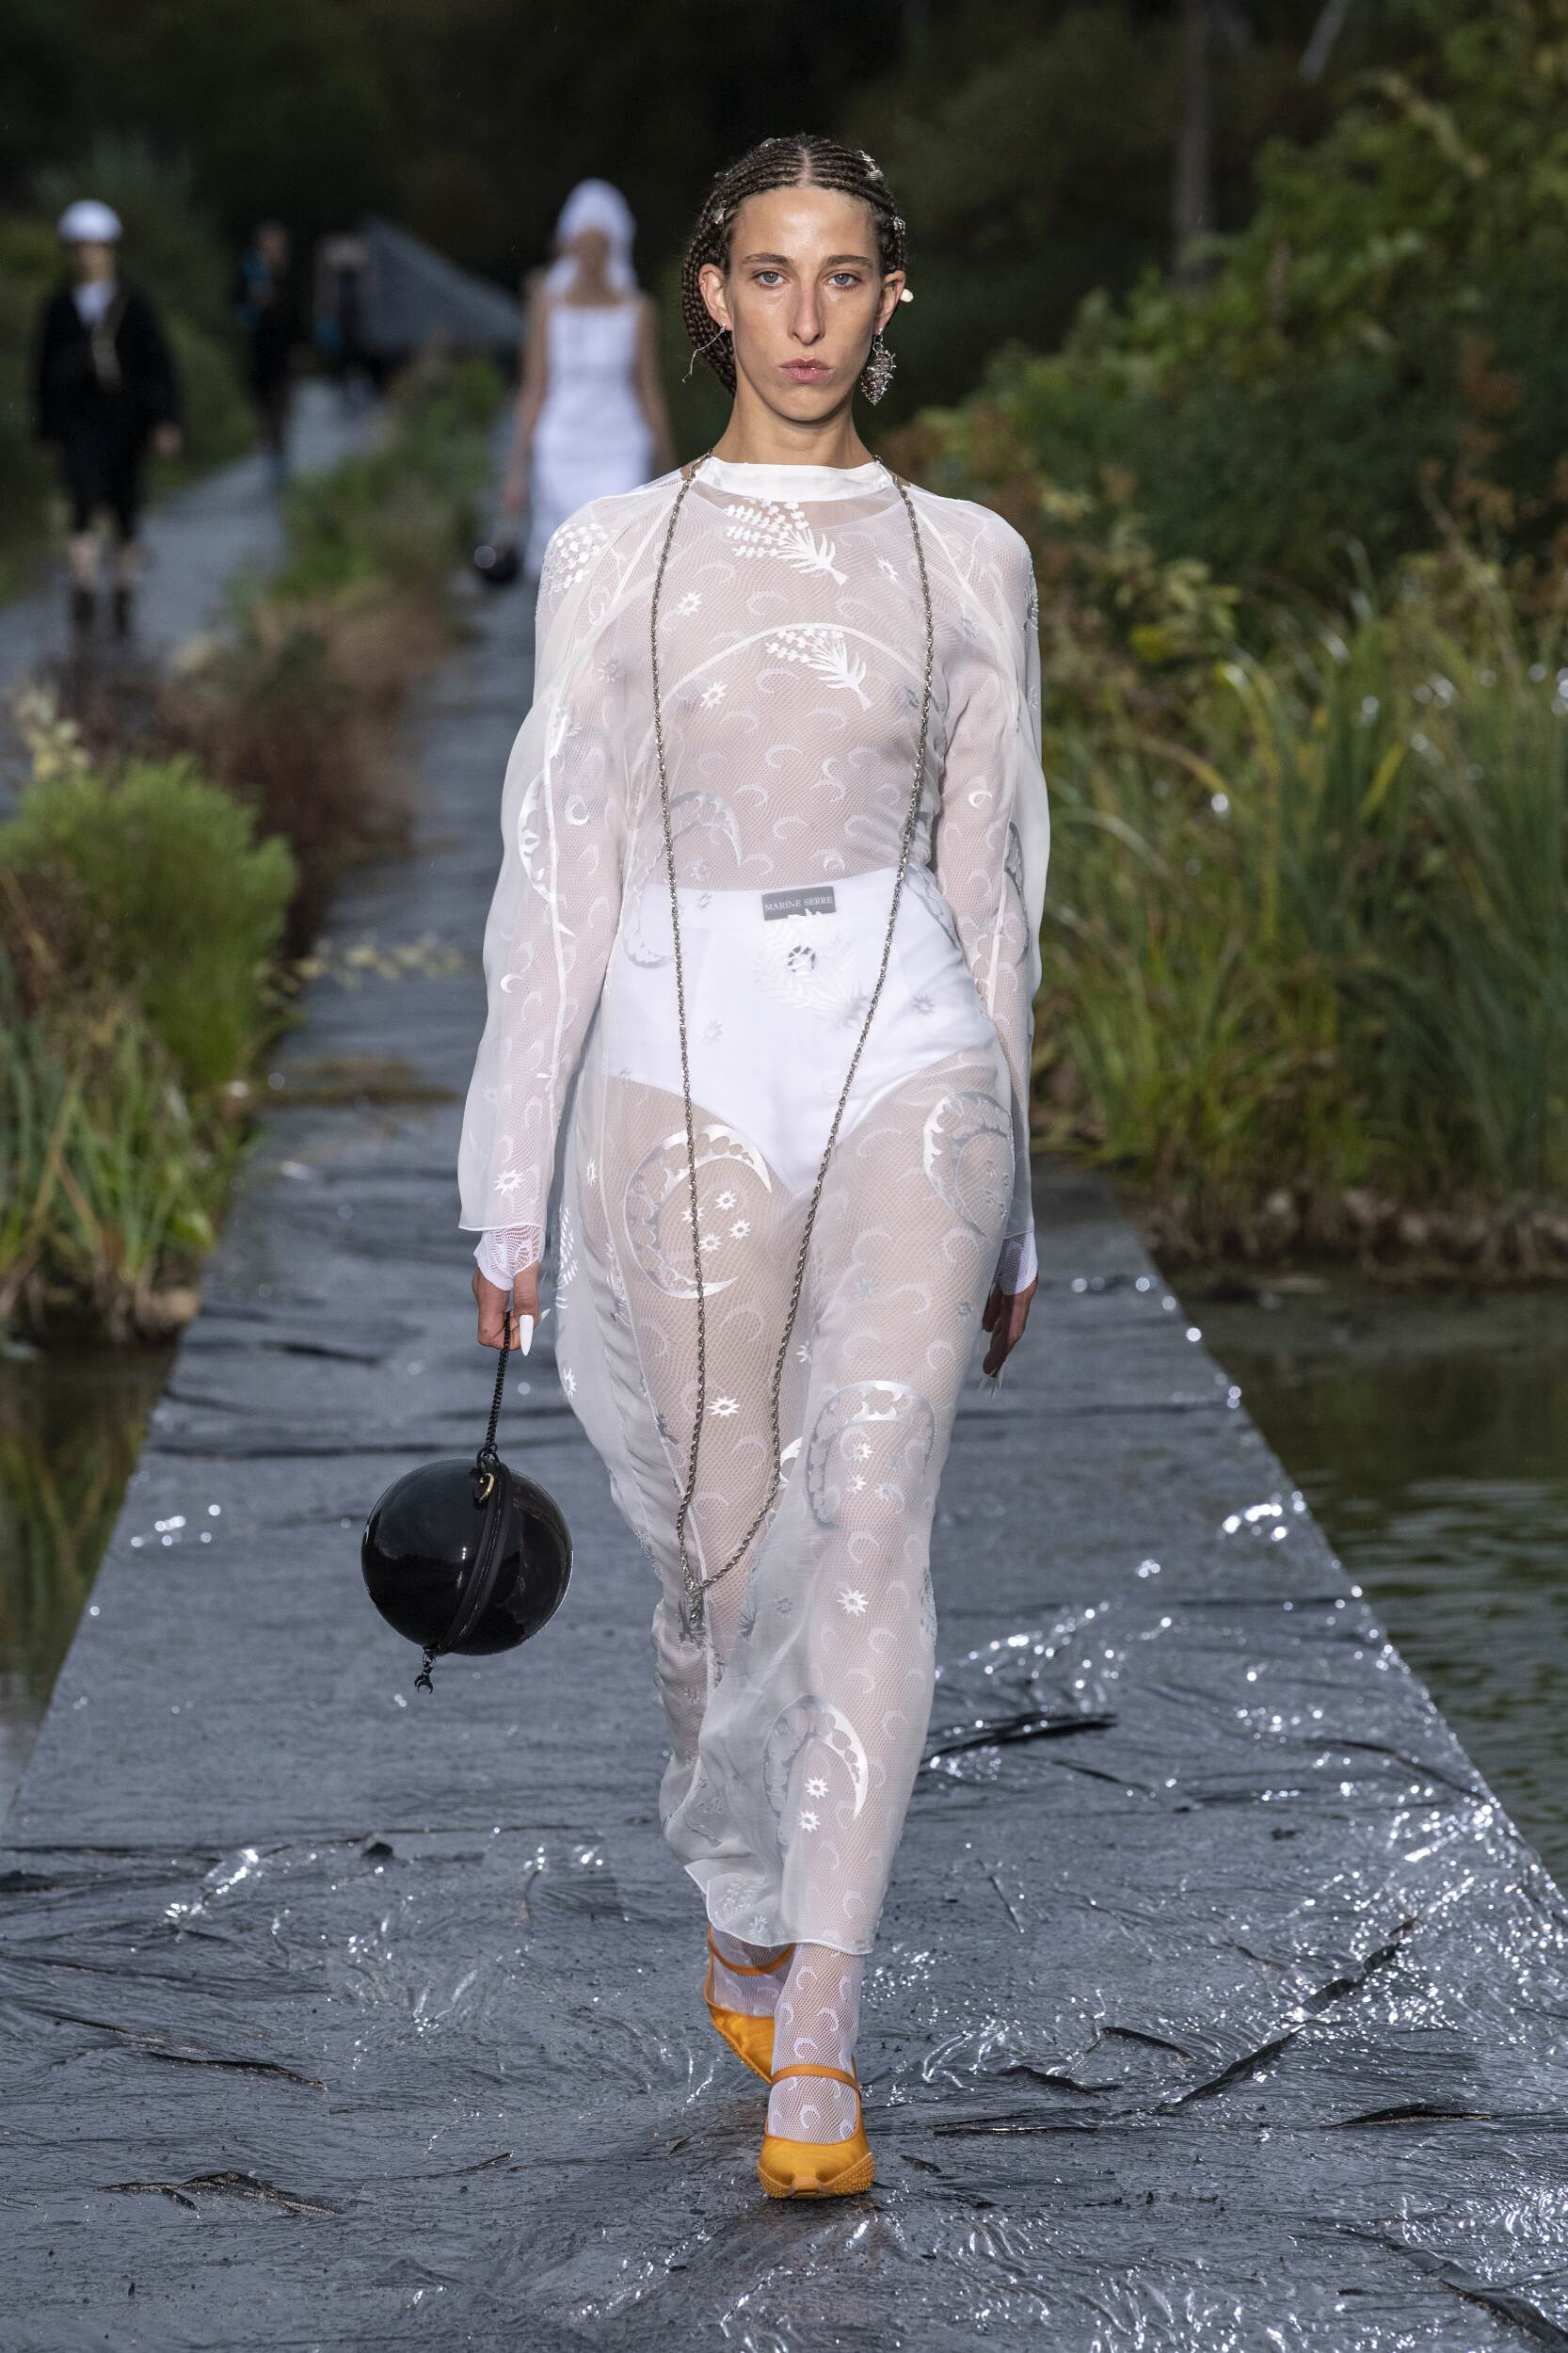 Spring Summer 2020 Woman Paris Marine Serre Collection